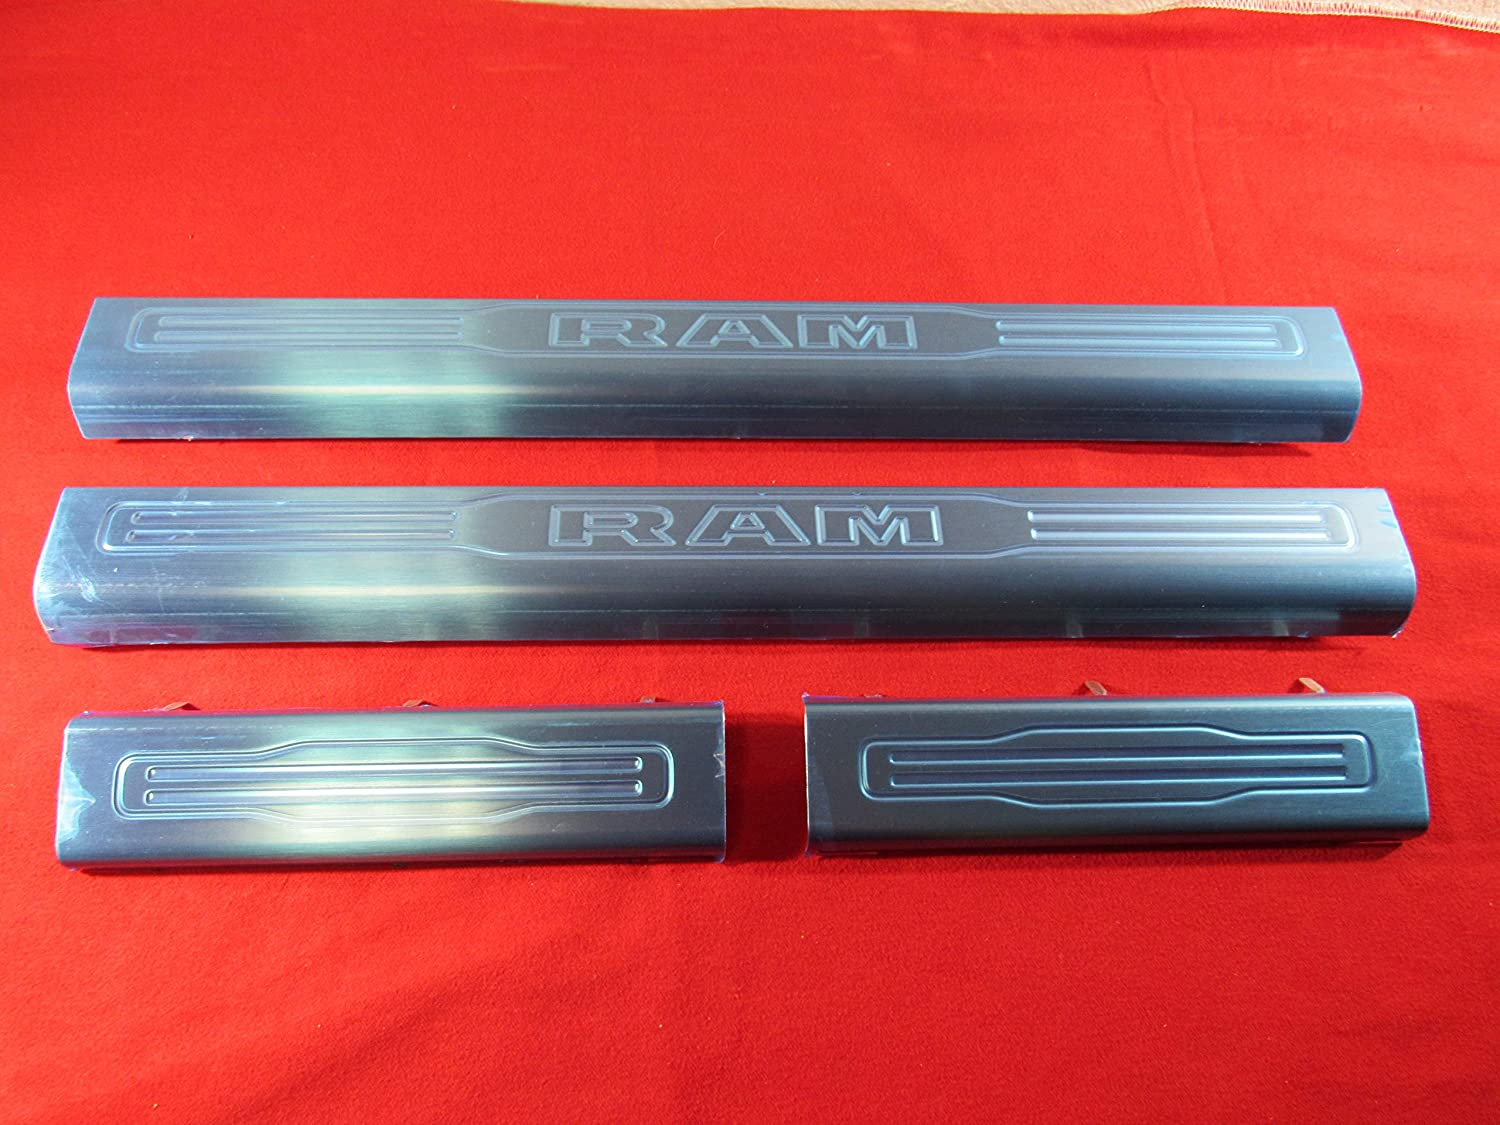 Mopar Dodge Ram Front Rear New product famous type Stainless Gua sill Steel Door Entry